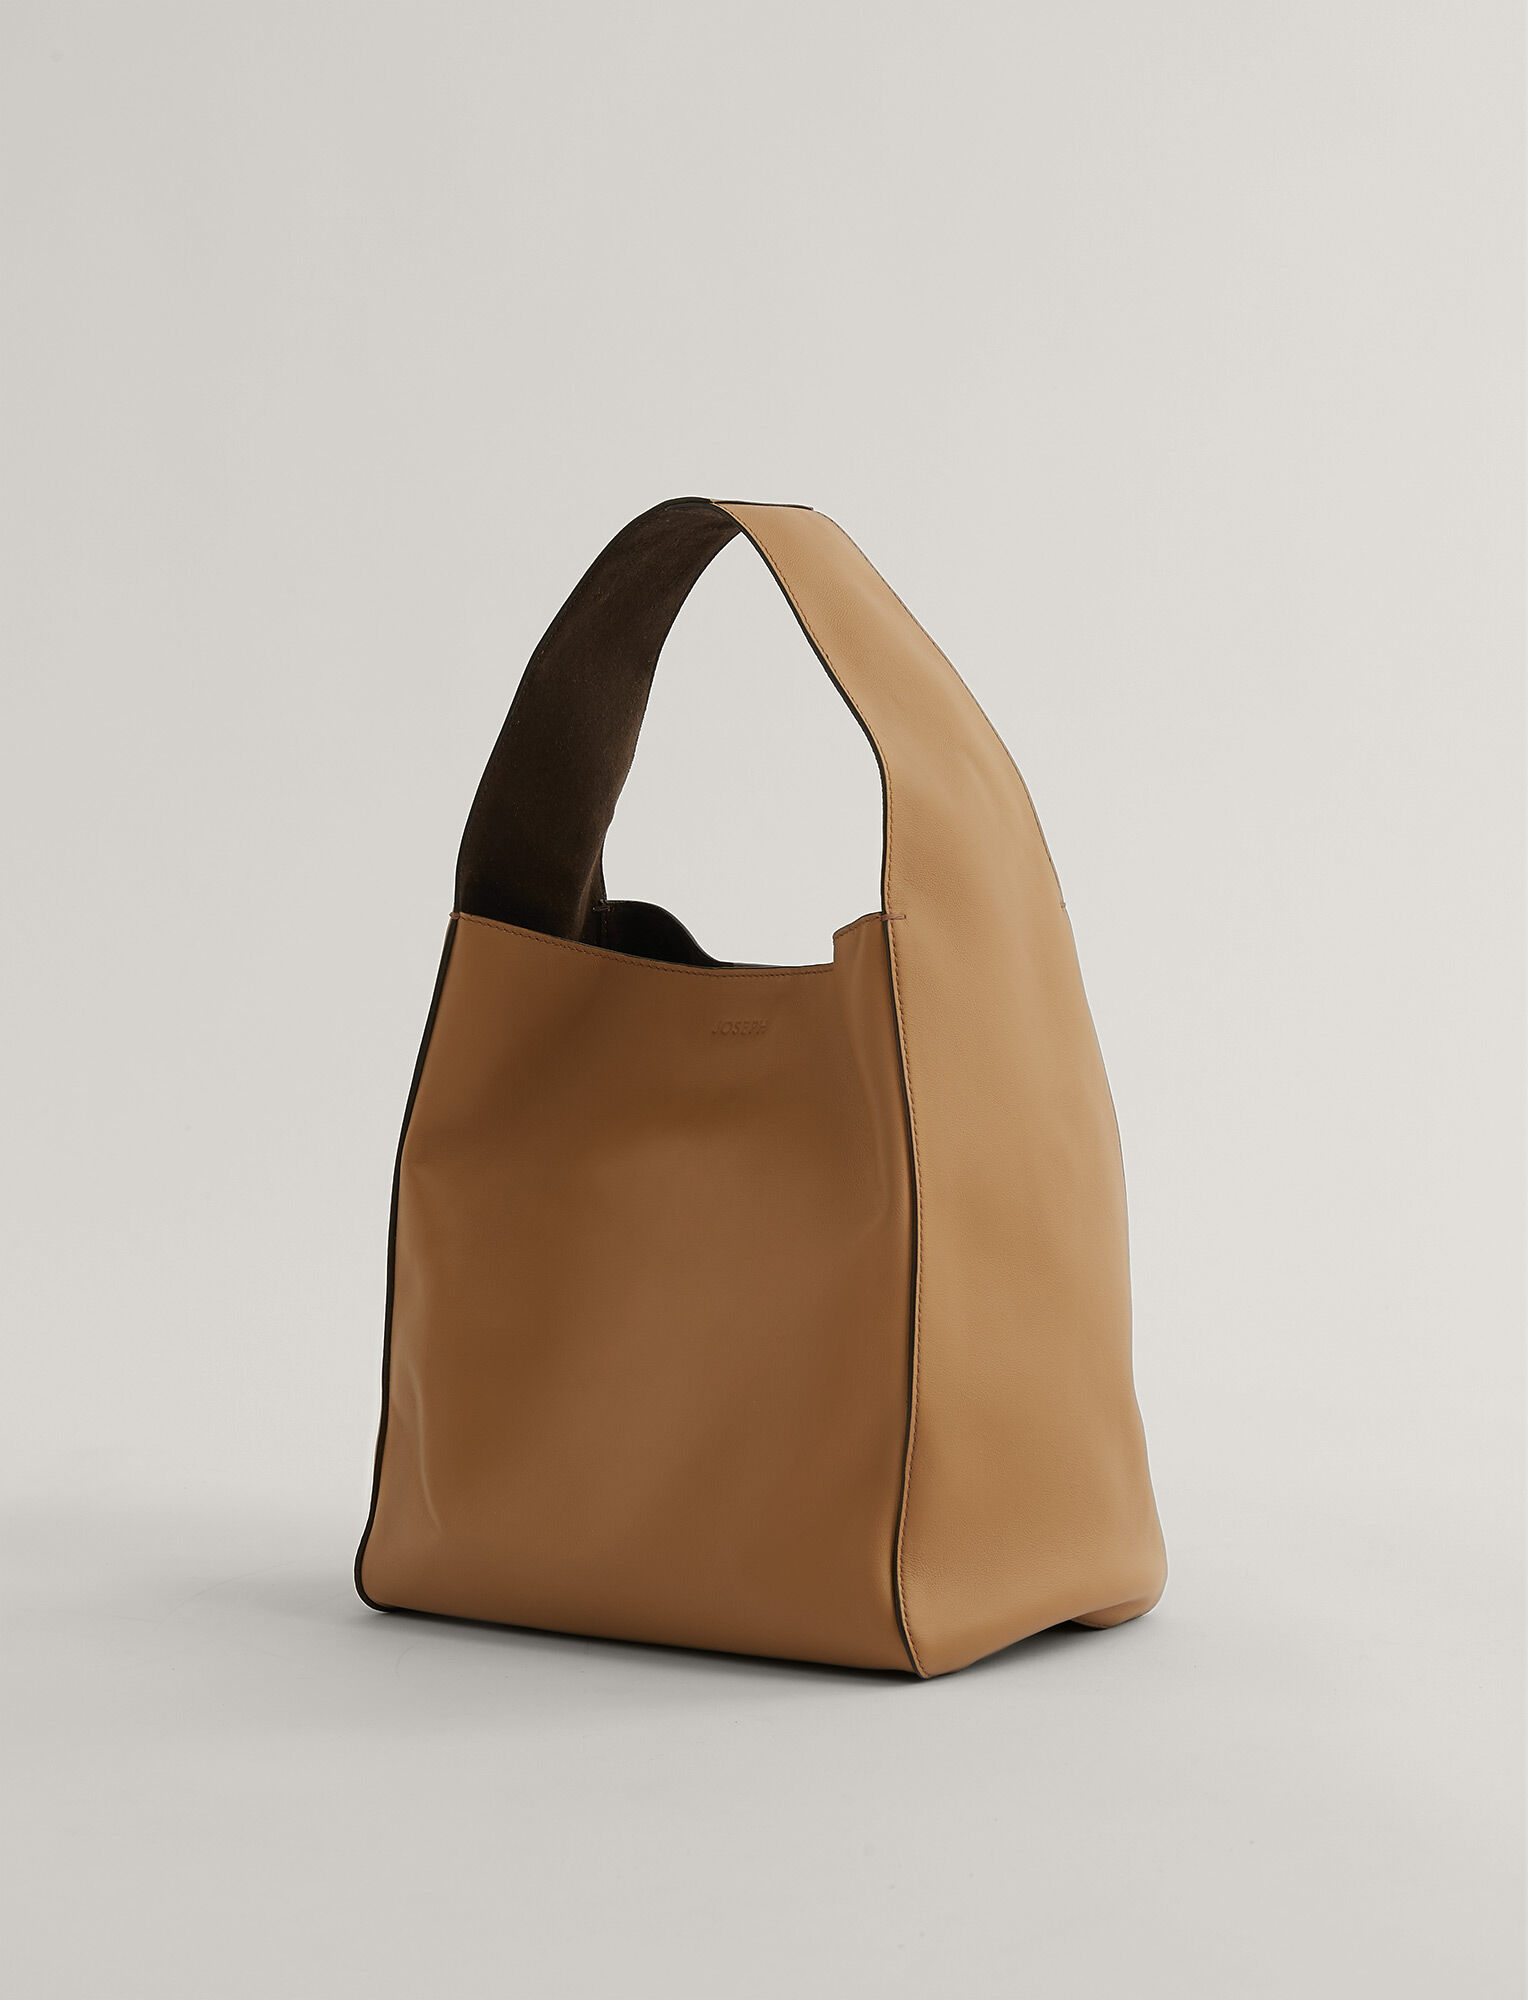 Joseph, Slouch S Bag, in Saddle